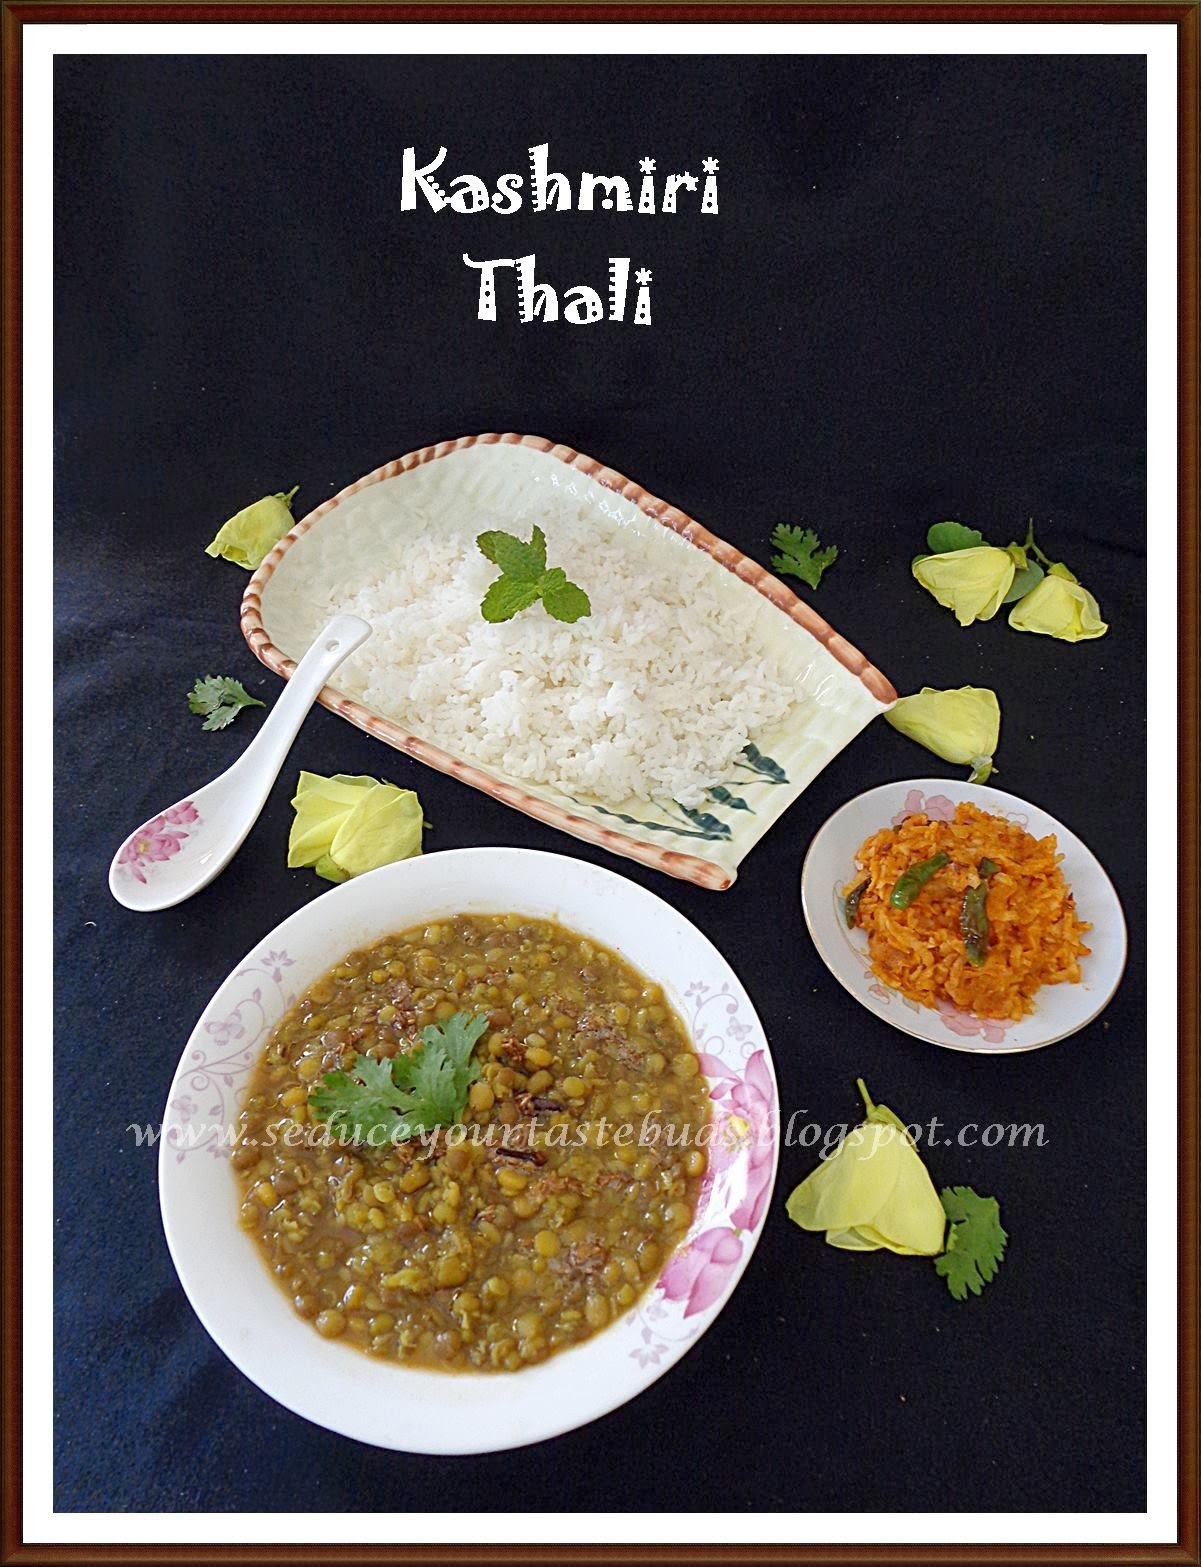 Dal Panchmel & Mujj Chatin | Dal Medley and Stir Fried Radish Chutney - Jammu and Kashmir